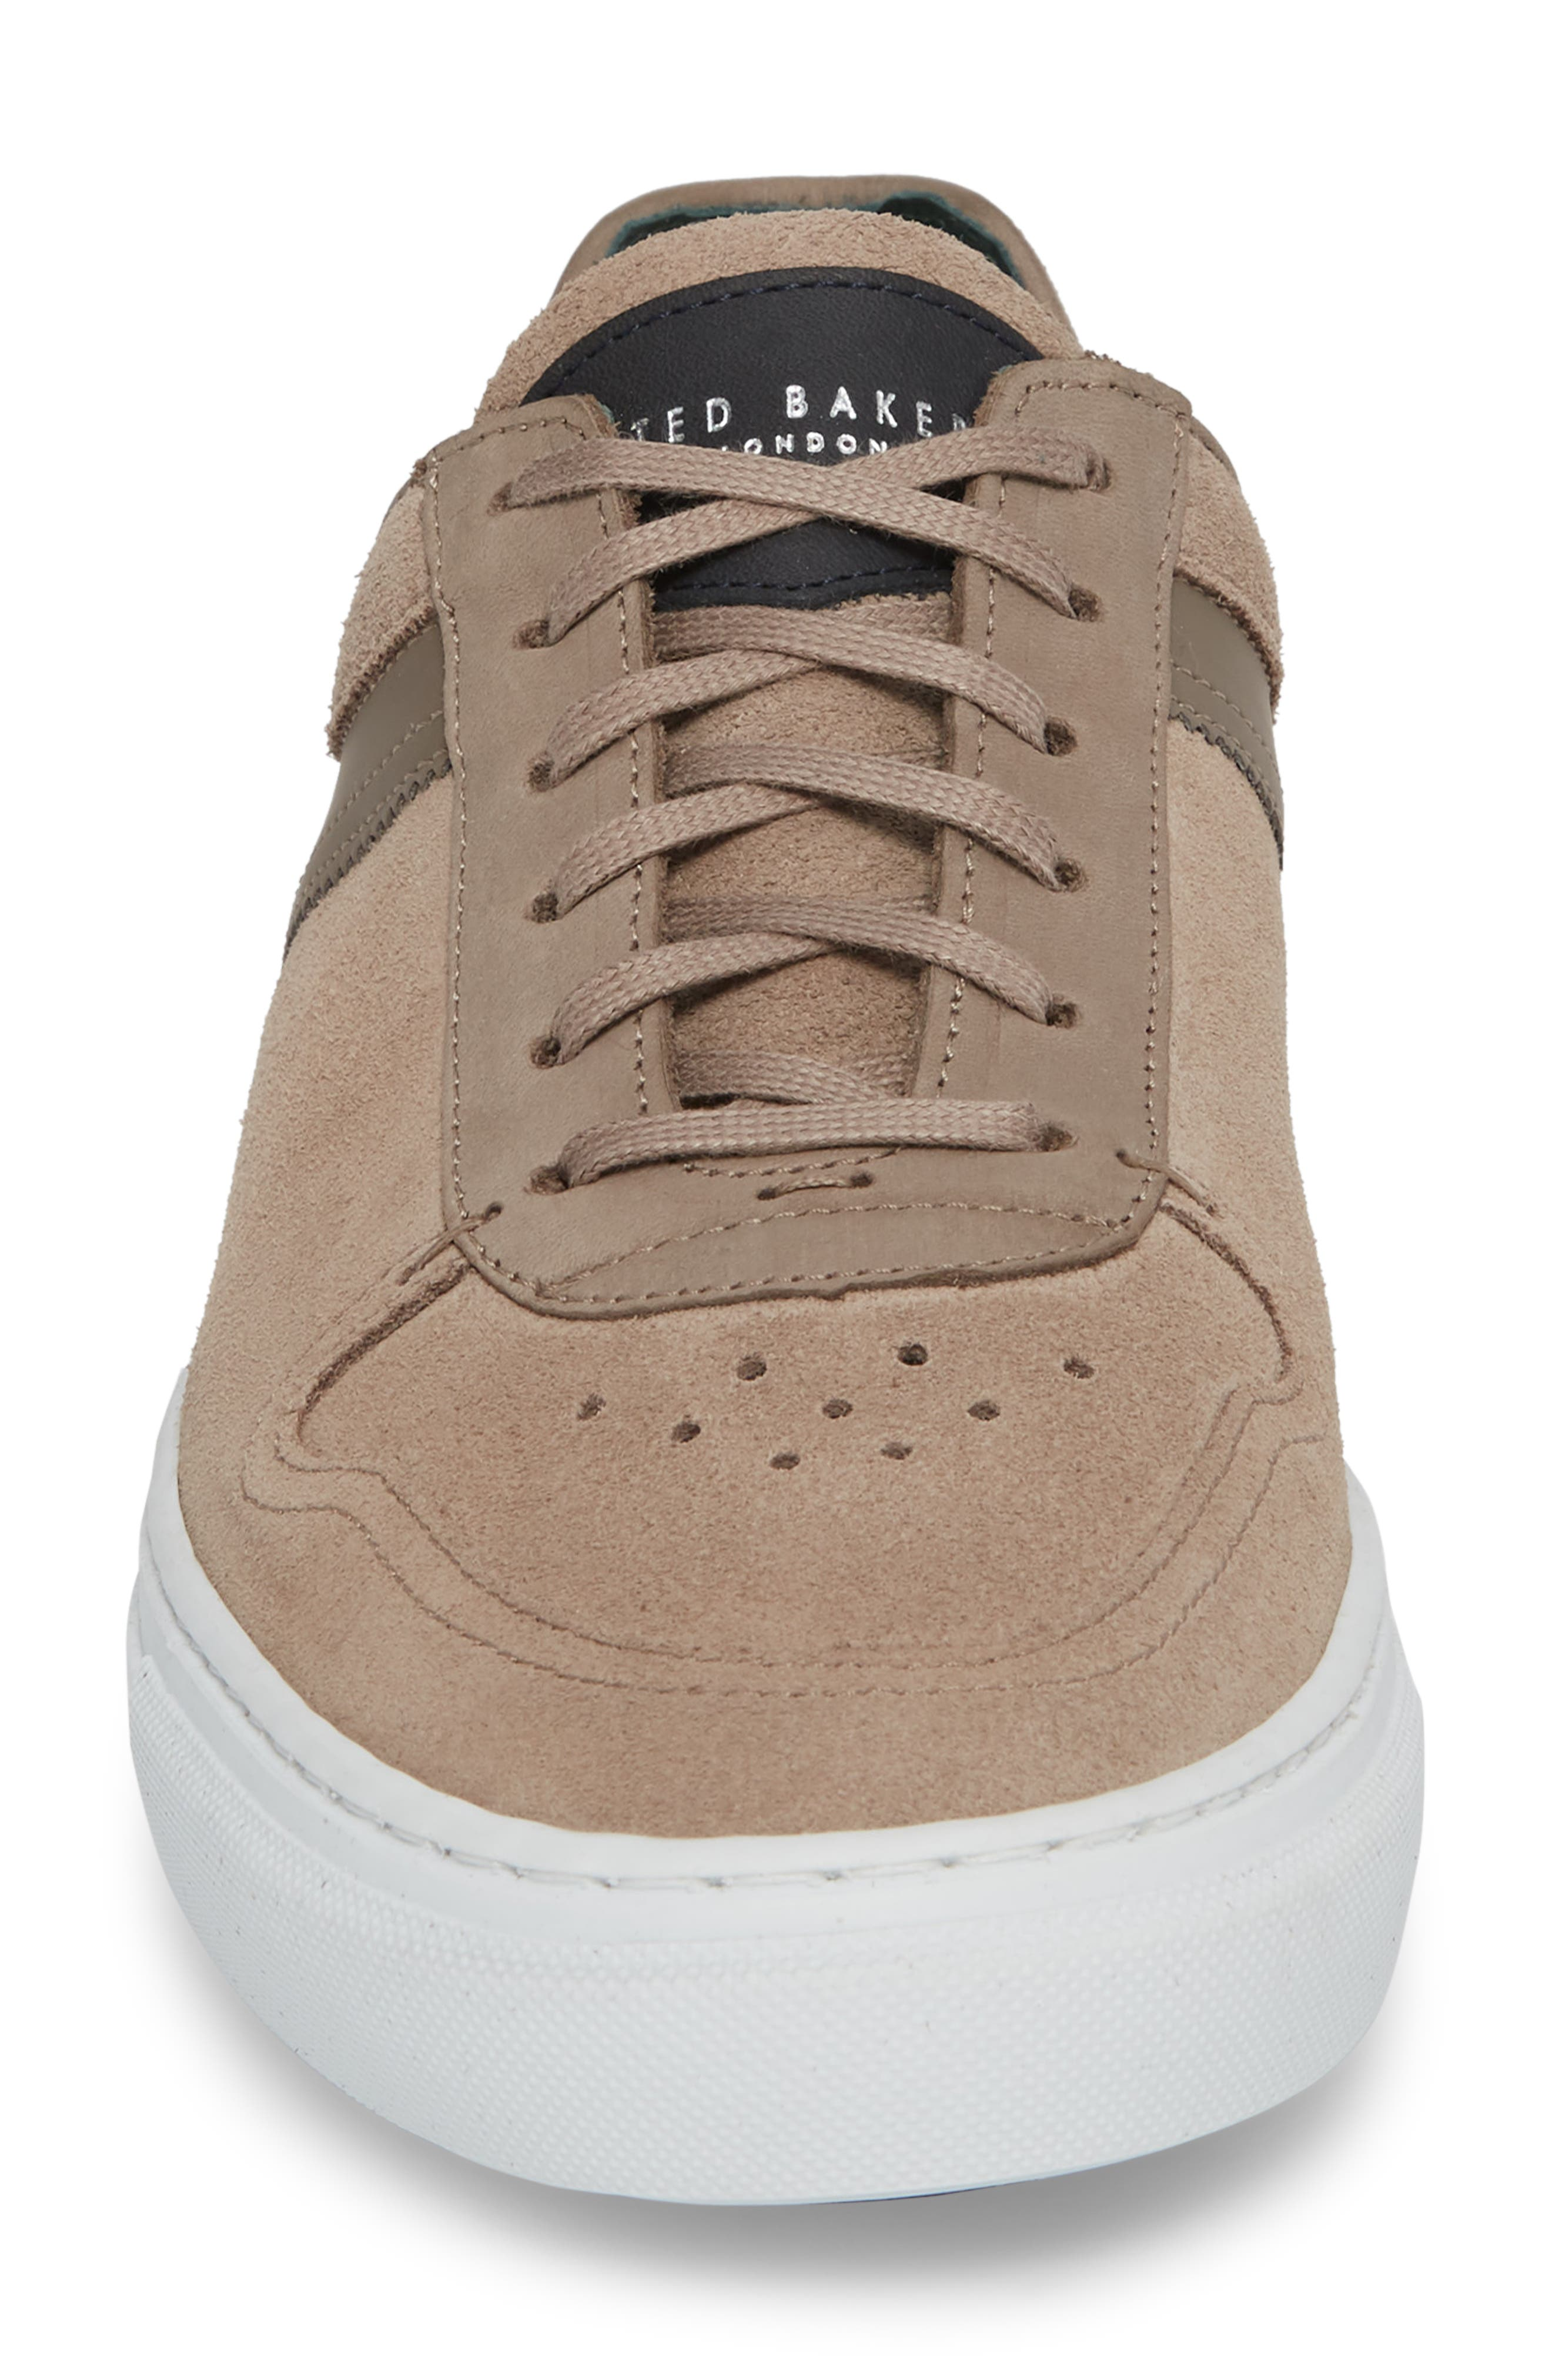 Burall Sneaker,                             Alternate thumbnail 4, color,                             GREY SUEDE/ TEXTILE